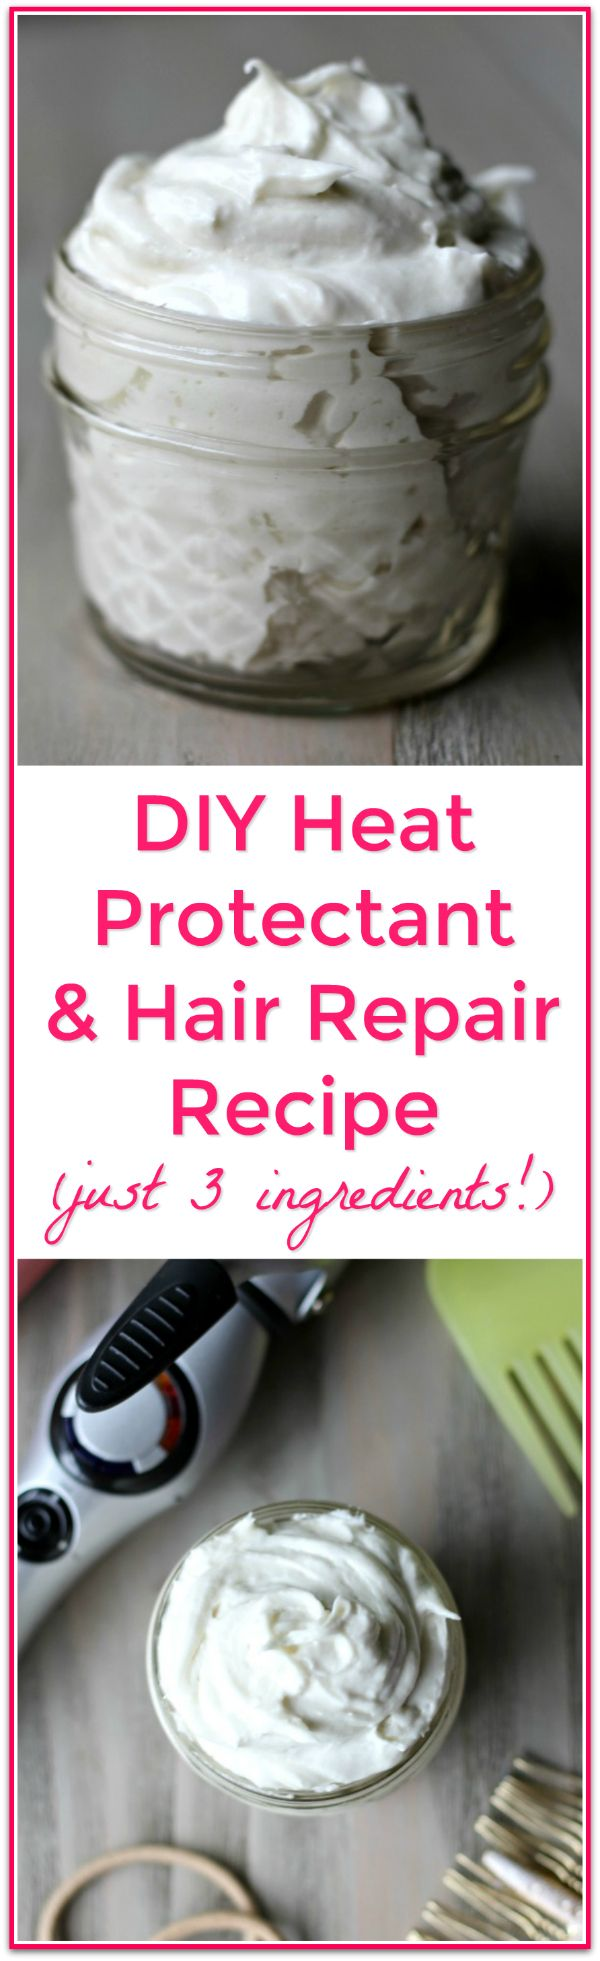 A 3 ingredient, easy DIY Heat Protectant and Hair Repair Styling Cream Recipe with results that even impressed my hair stylist! Simple, natural ingredients to deeply nourish and protect damaged or heat styled hair.